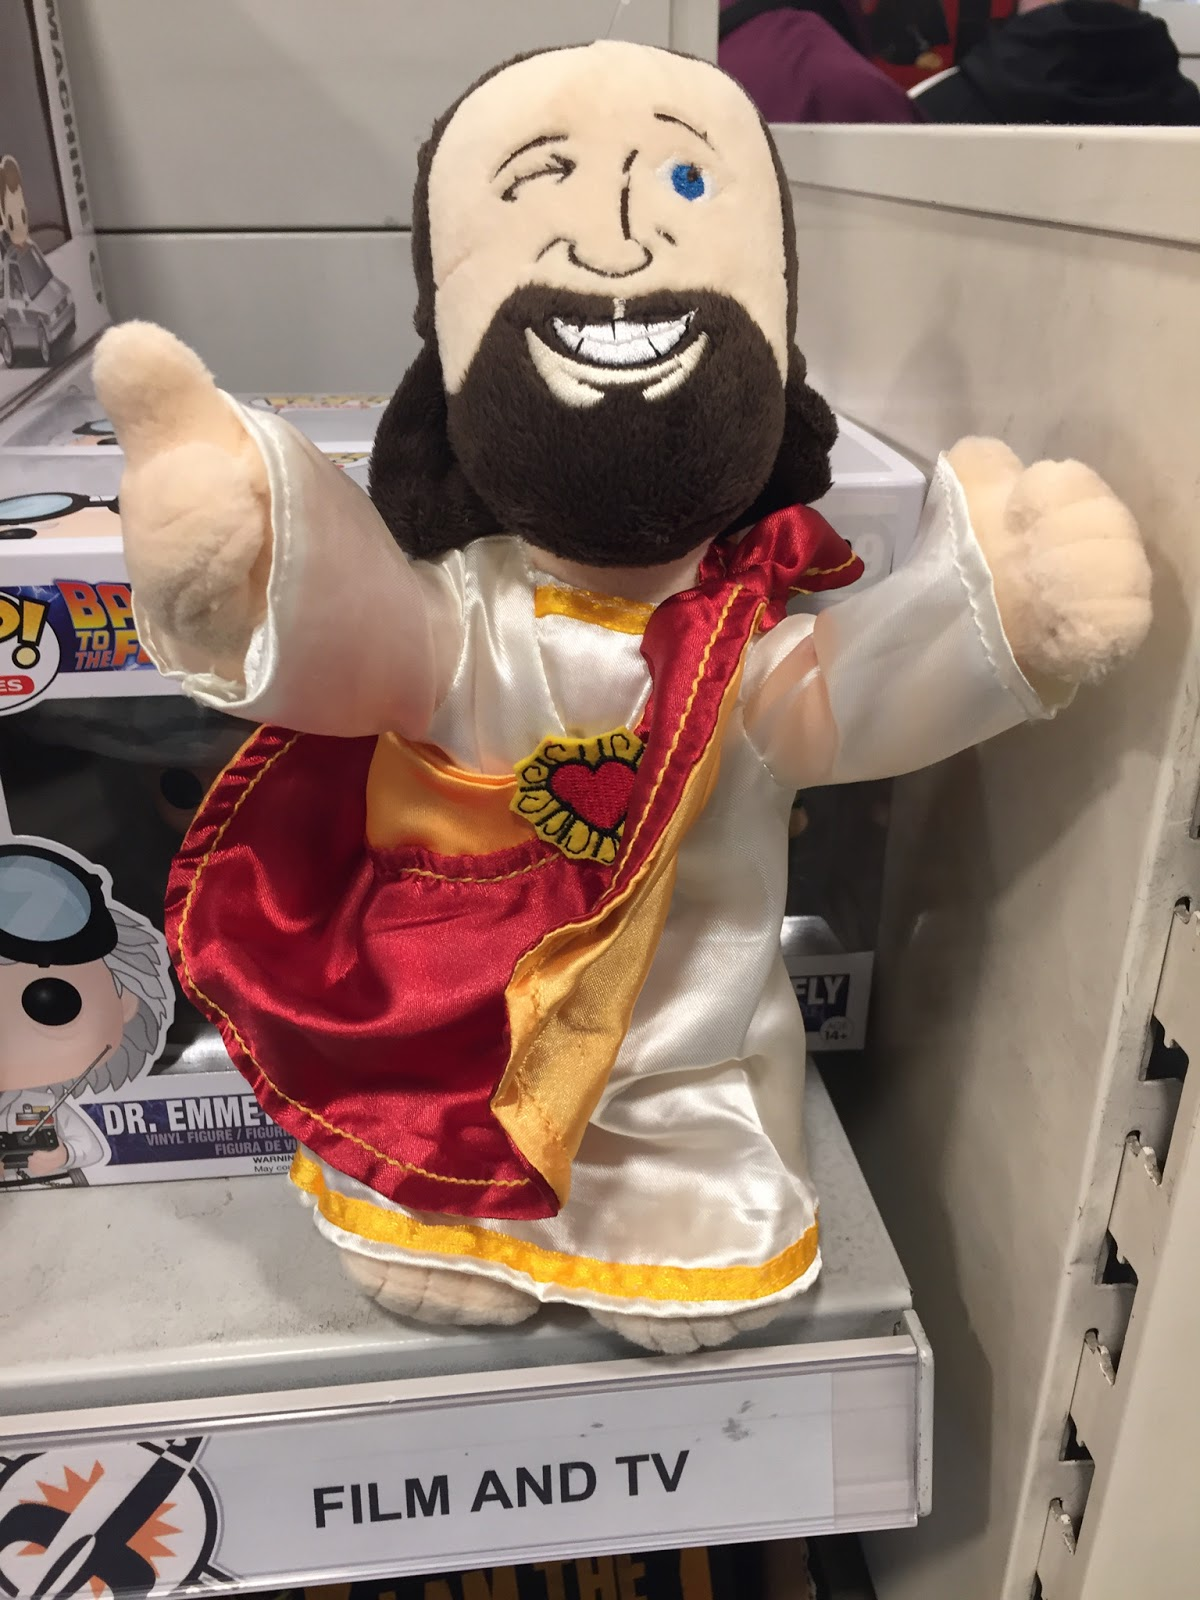 Cuddly Buddy Christ